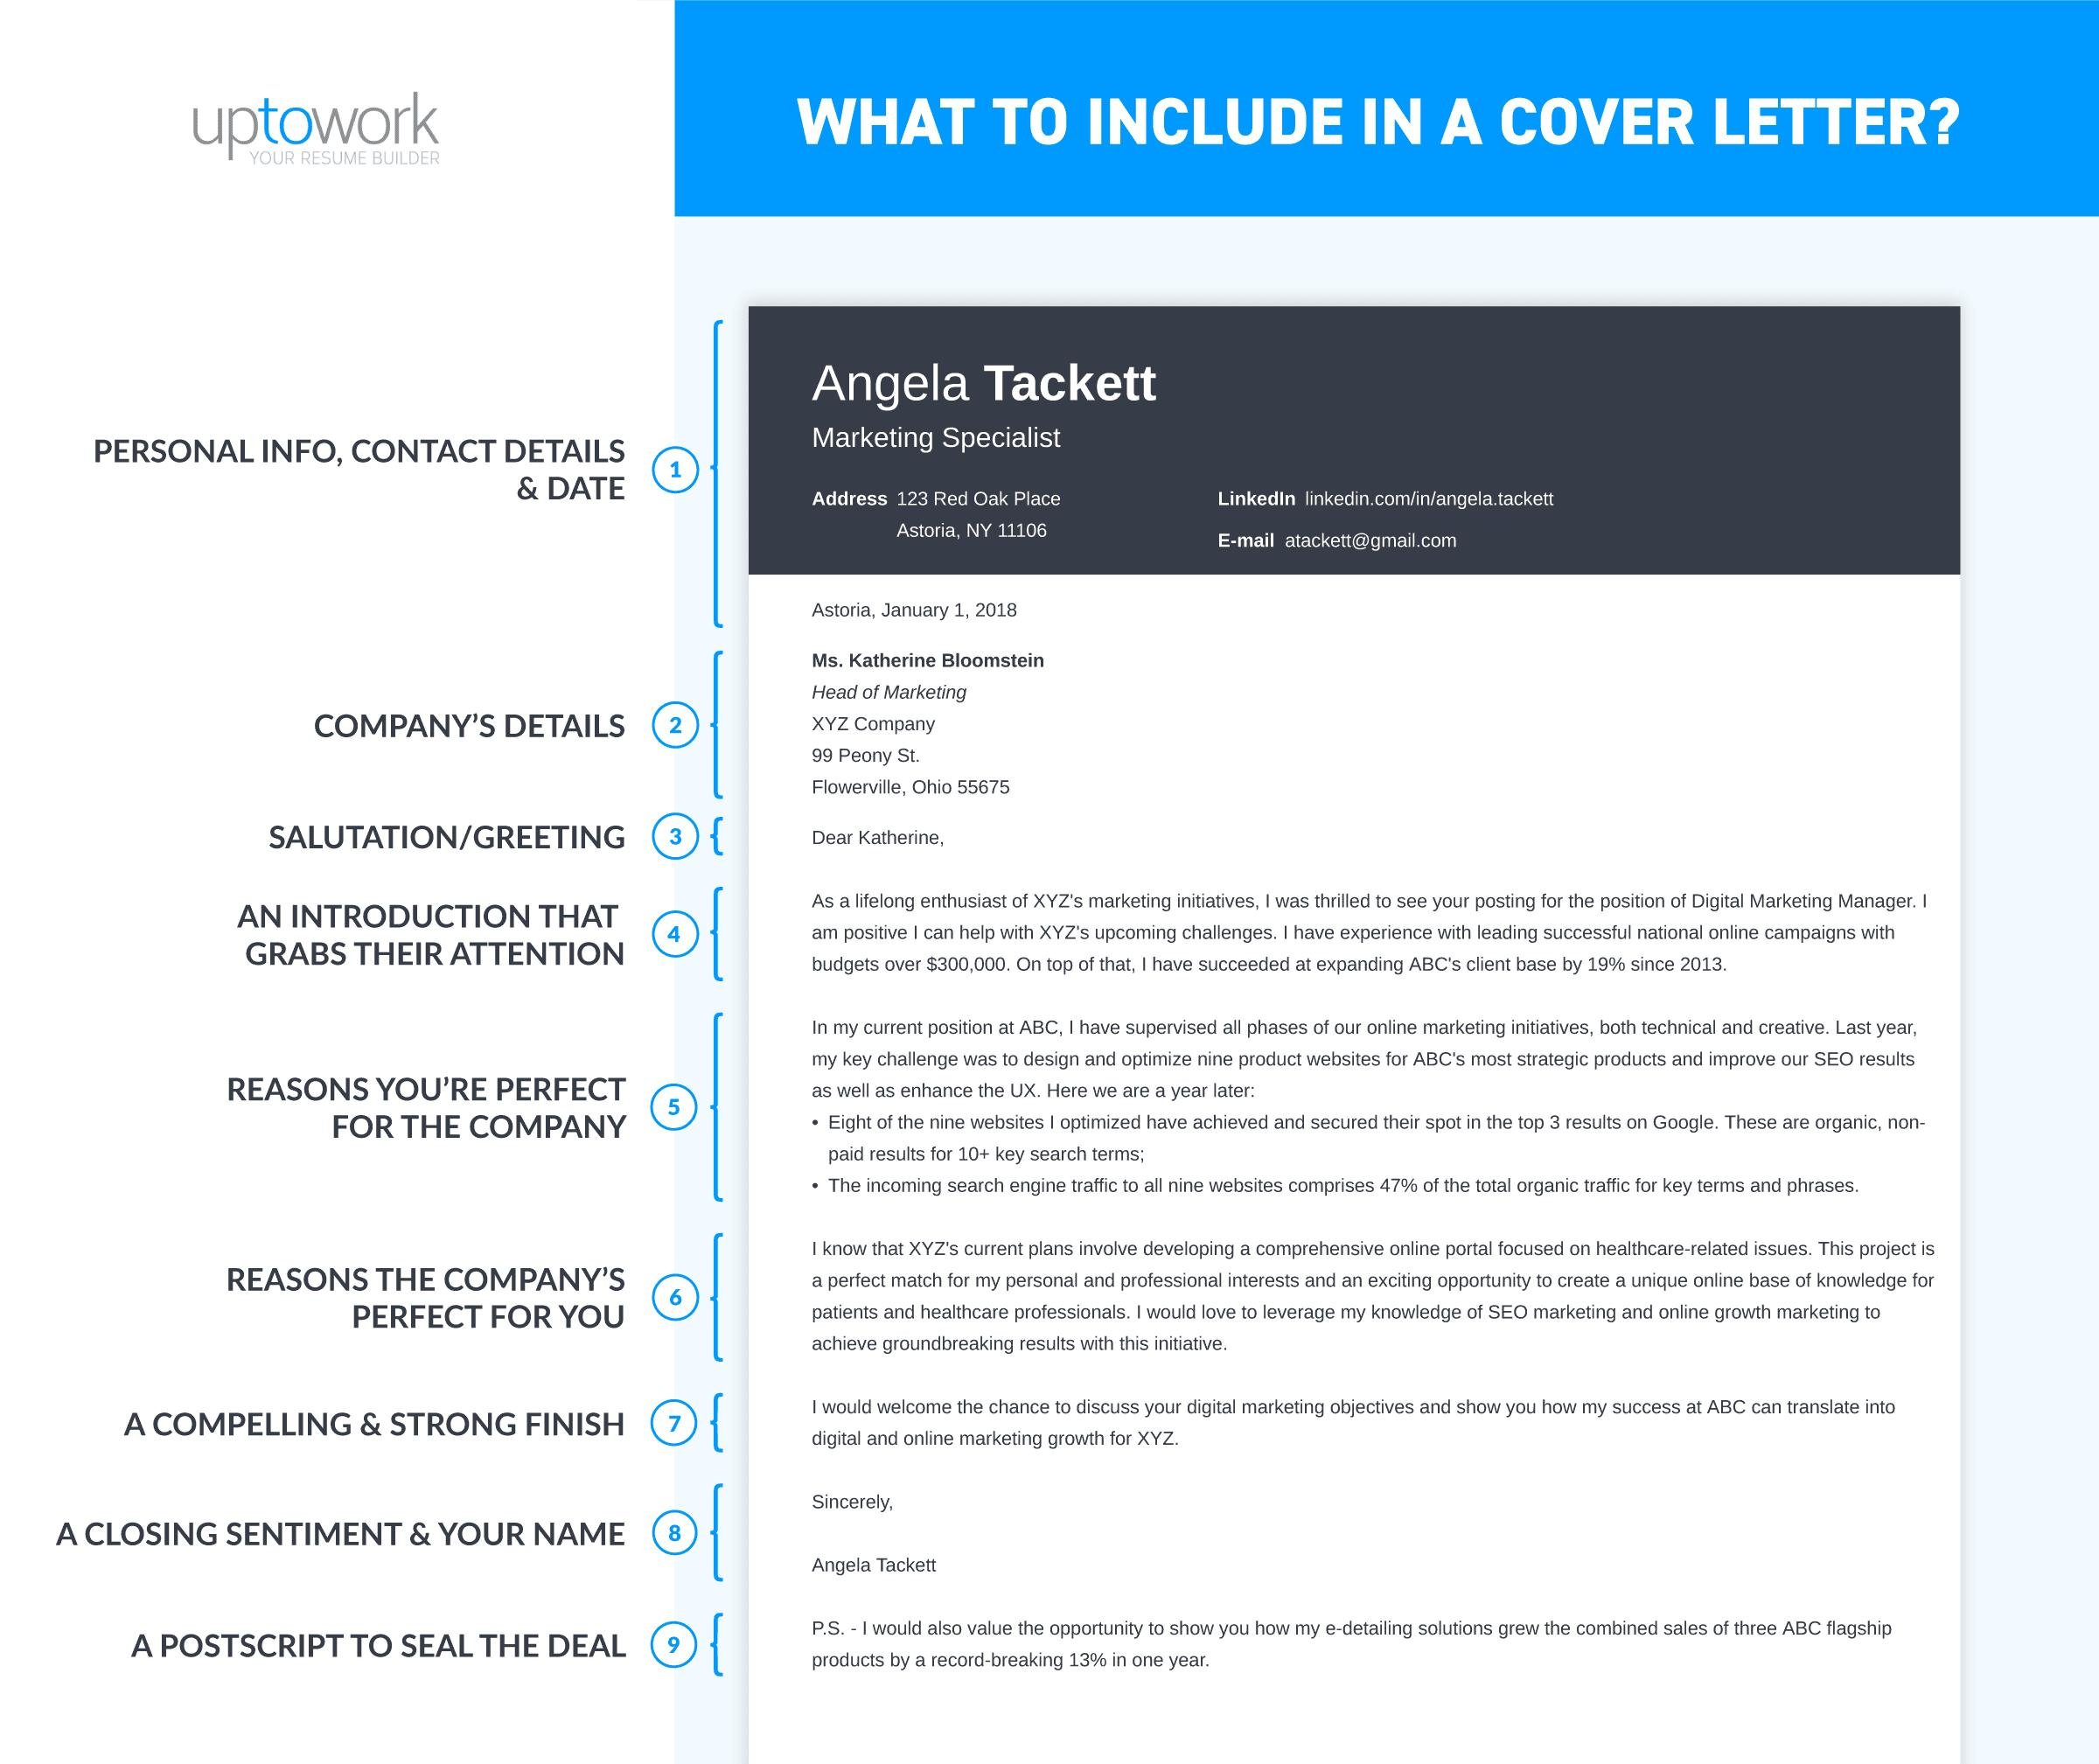 what to include in a cover letter infographic